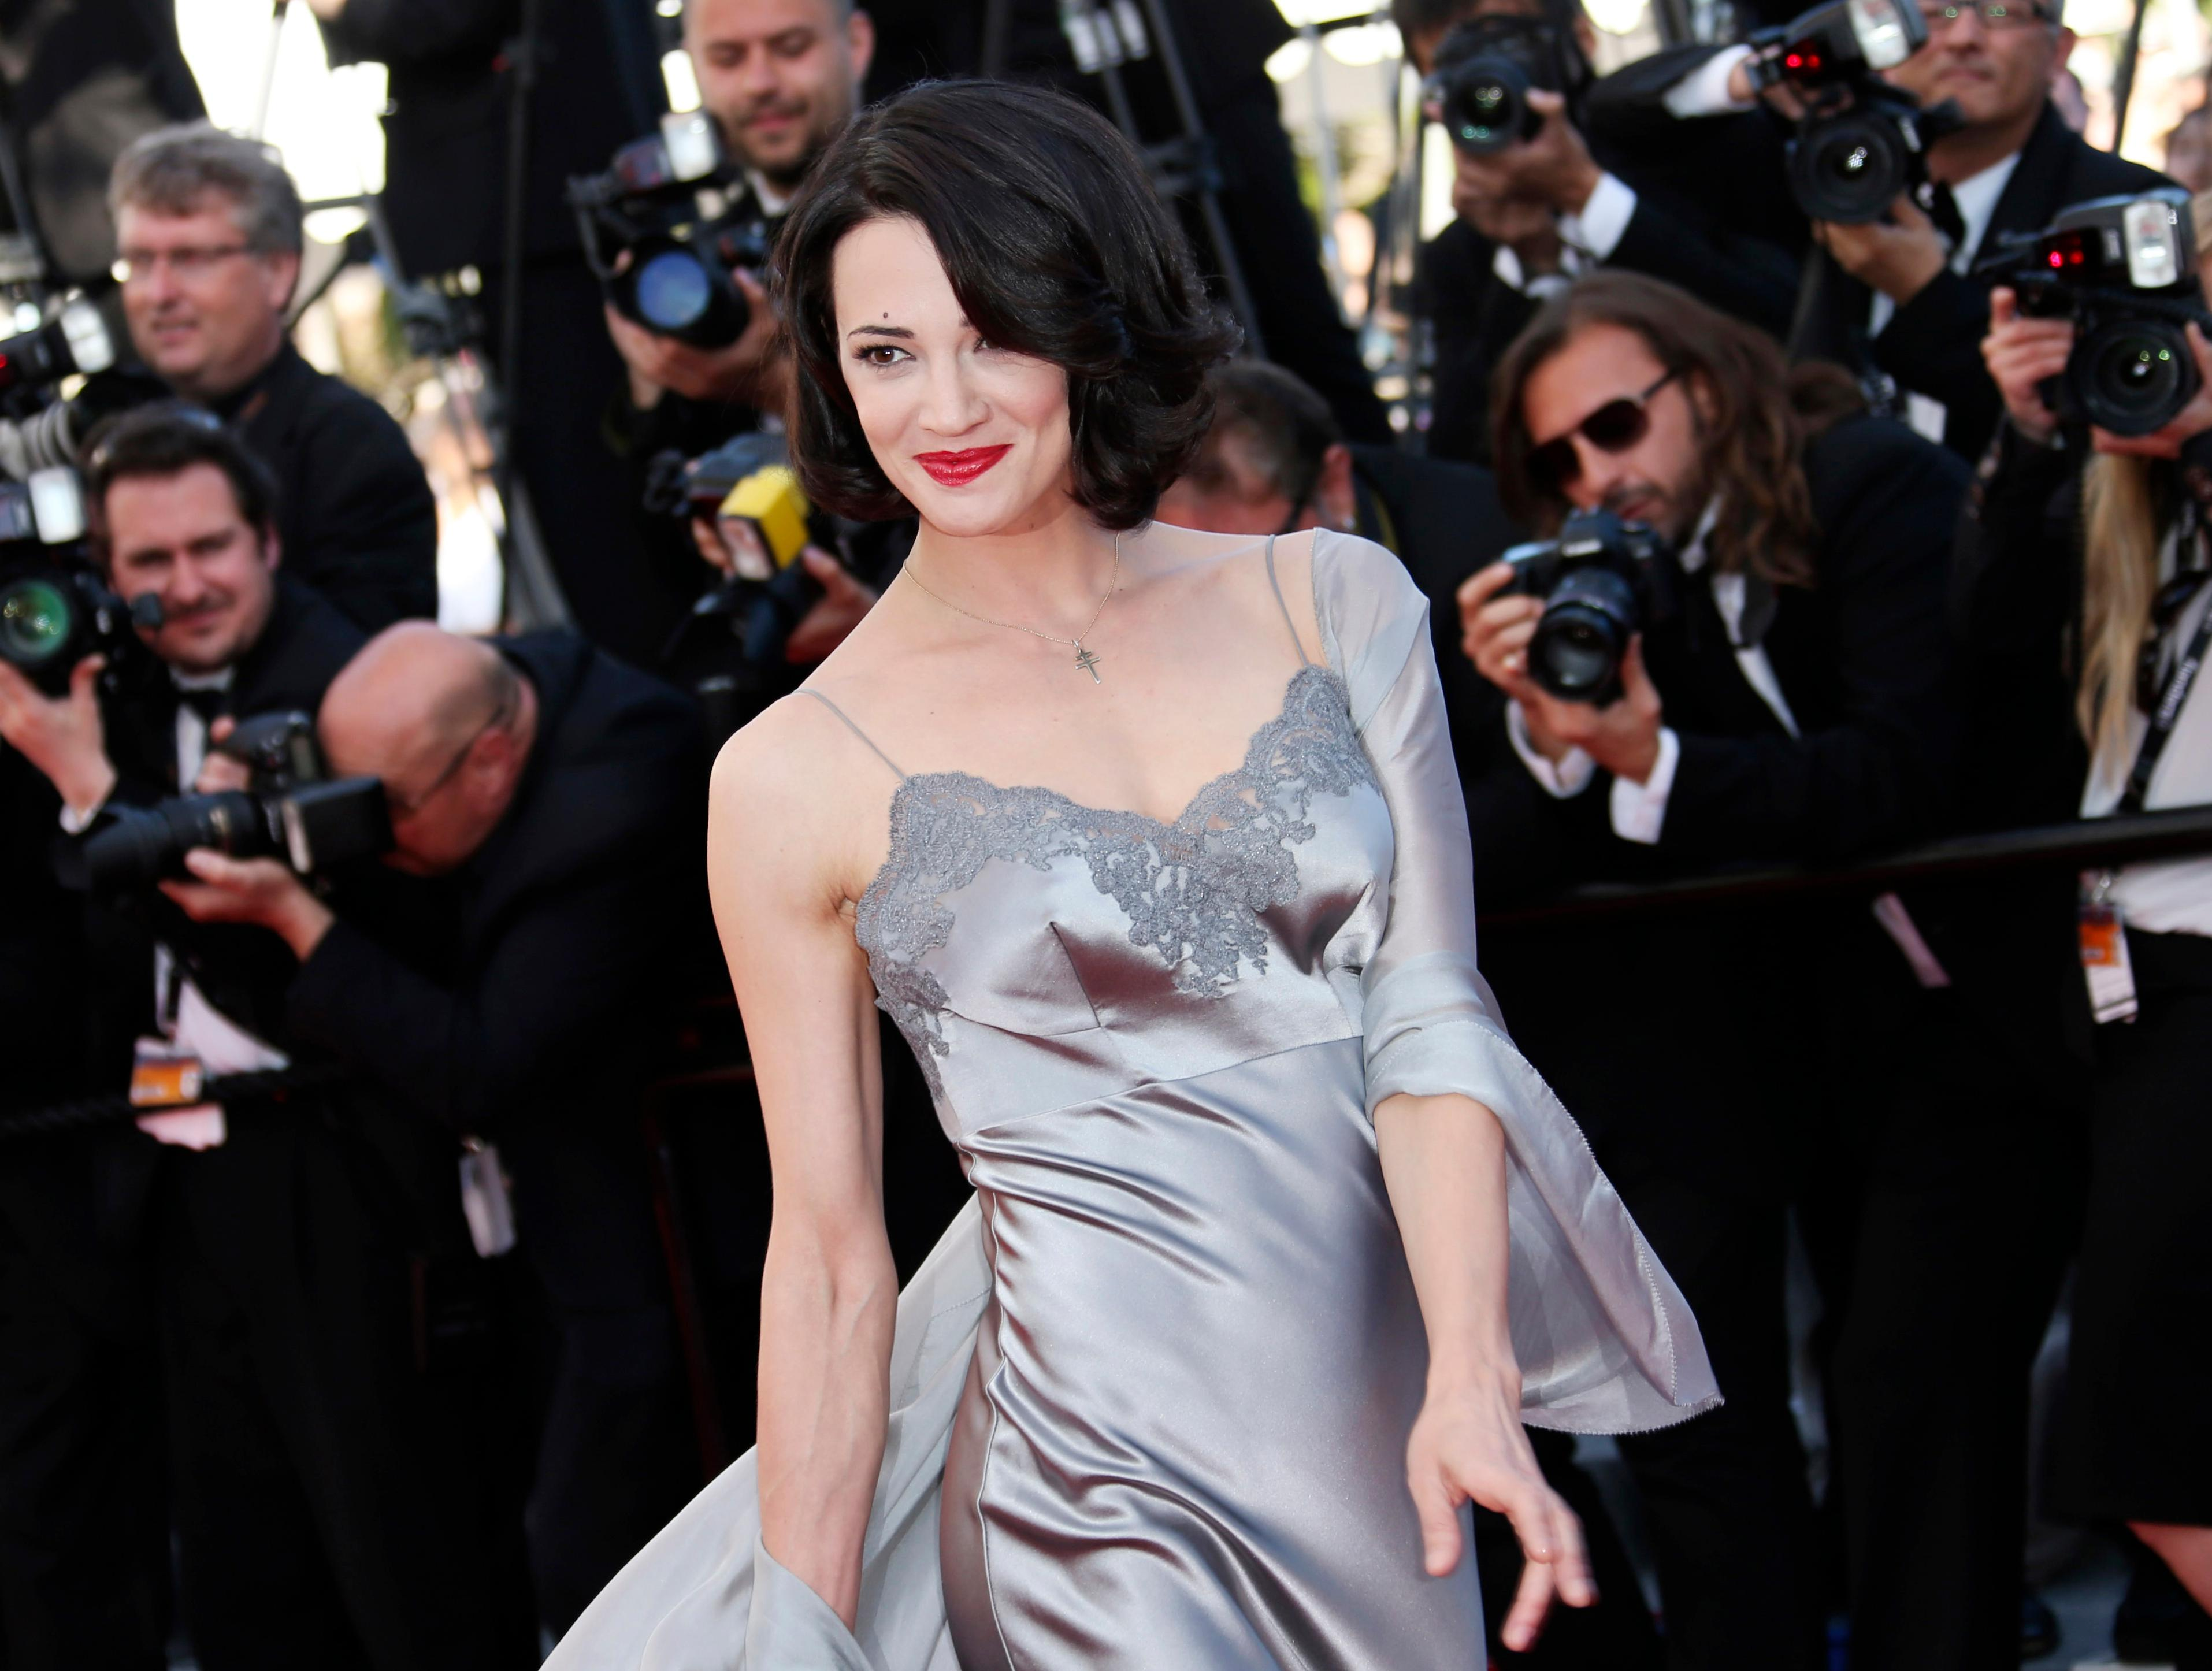 FILE - In this May 26, 2013 file photo, actress Asia Argento arrives for the awards ceremony of the 66th international film festival, in Cannes, southern France. (Photo by Joel Ryan/Invision/AP, File)